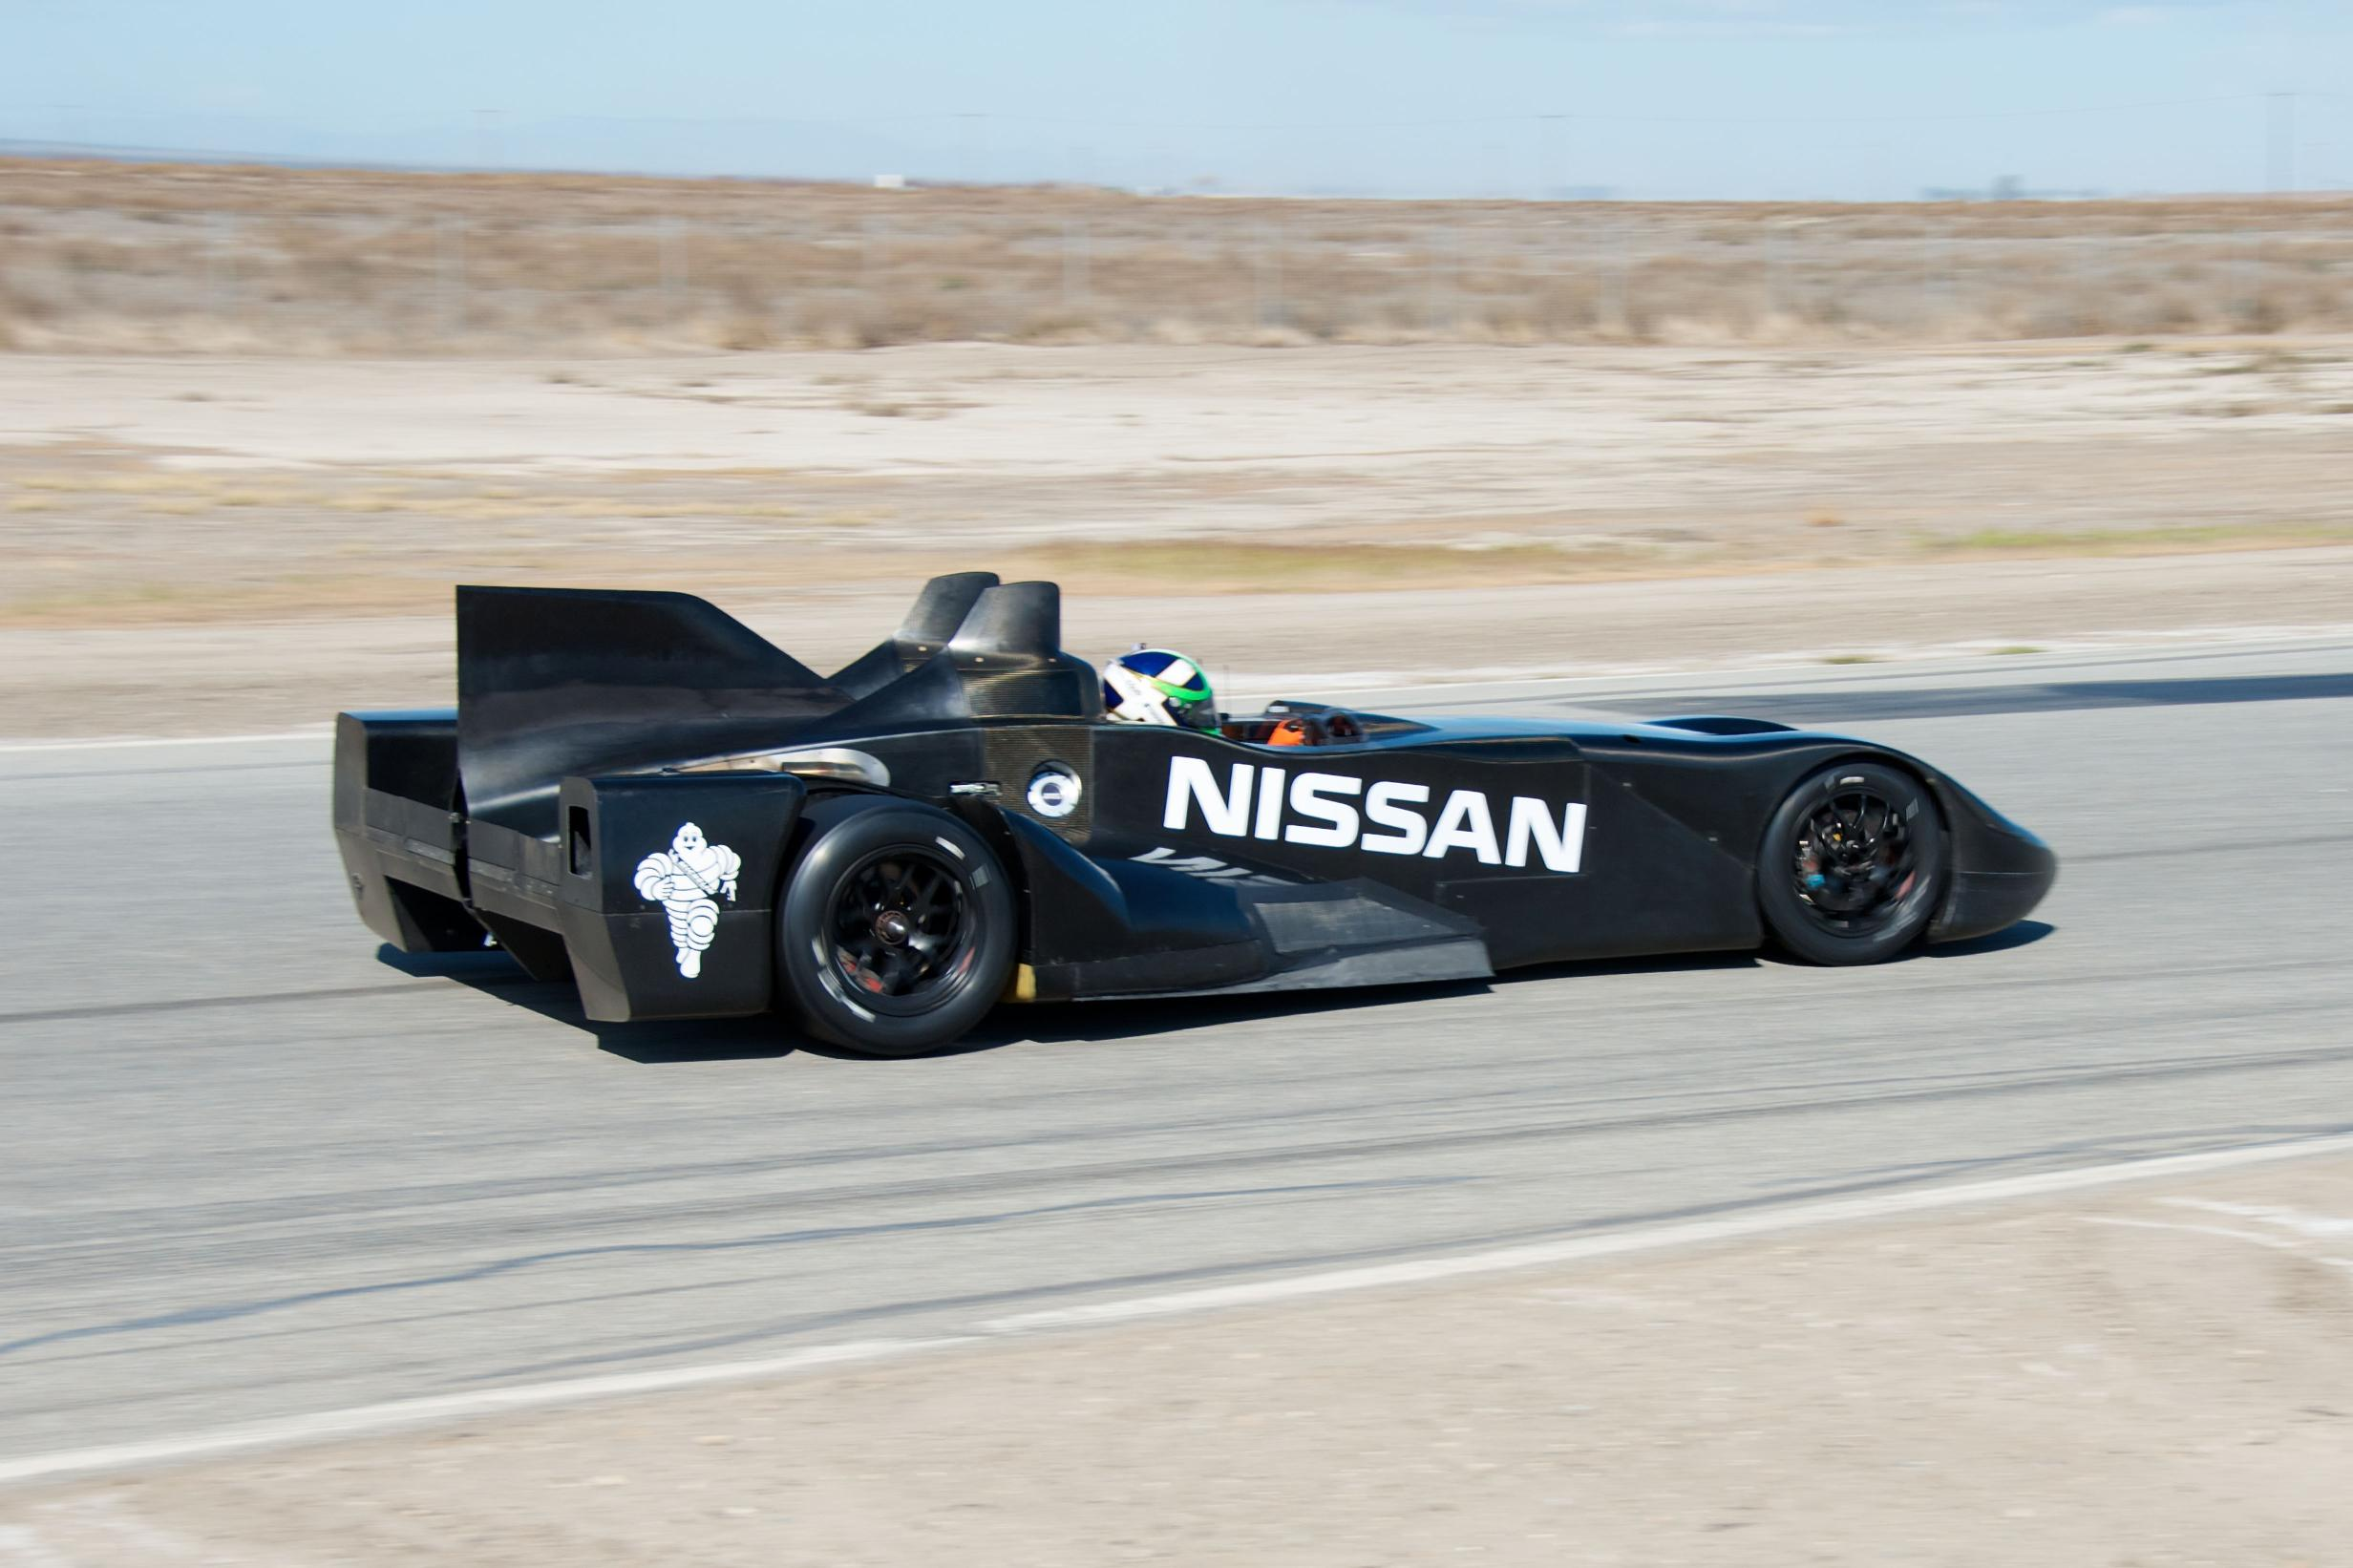 Nissan DeltaWing Batmobile Driving Rear